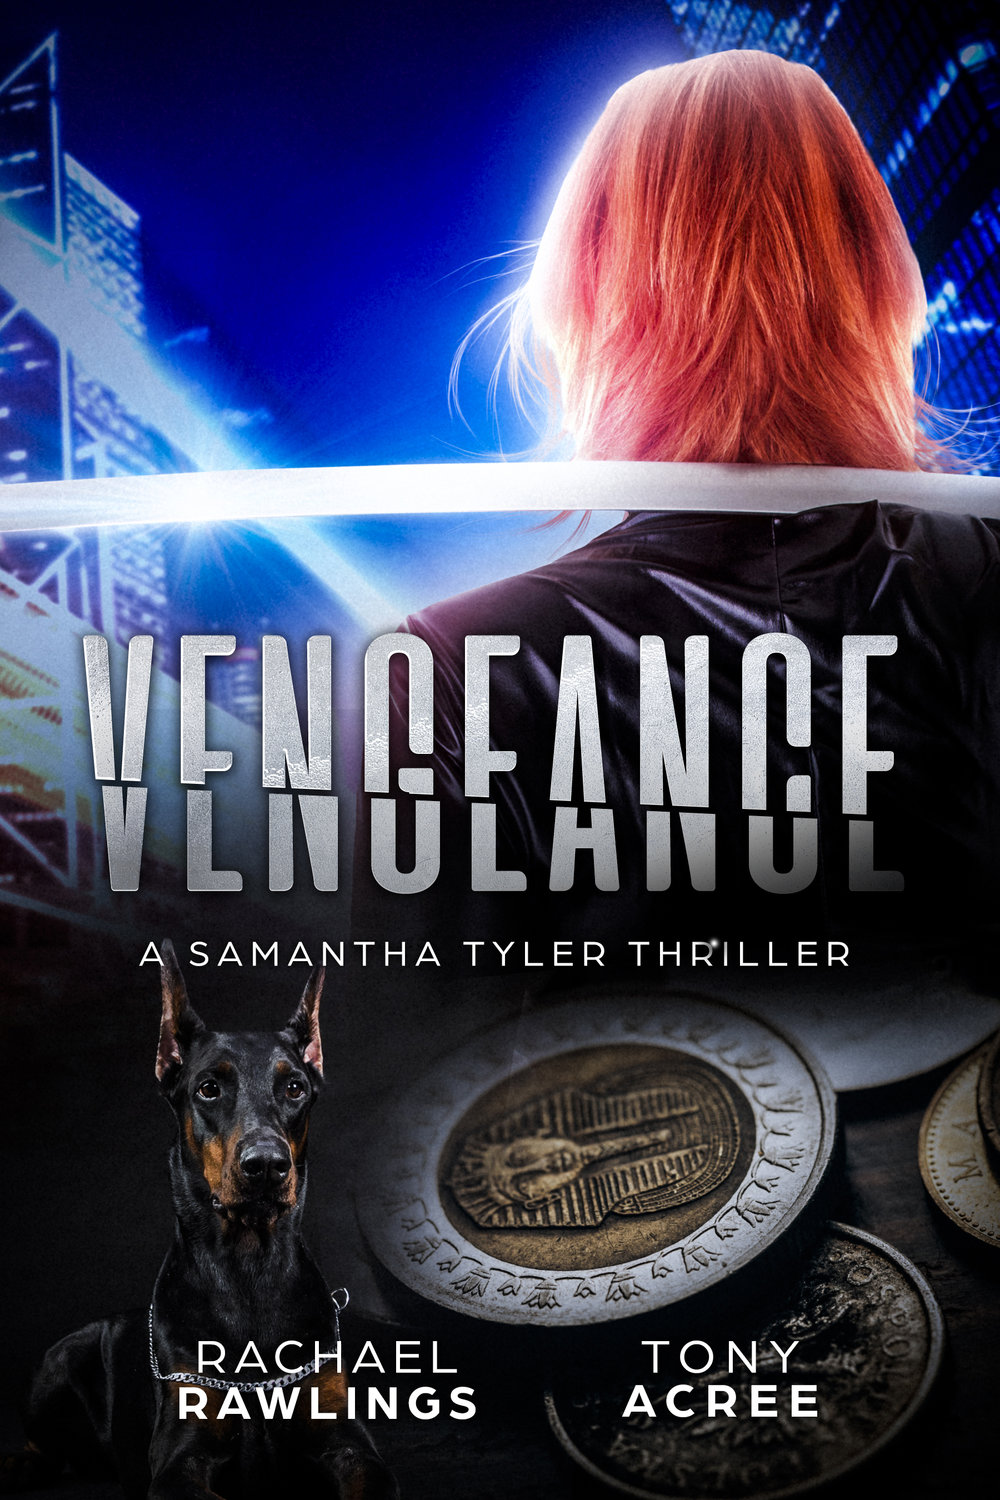 Copy of Vengeance